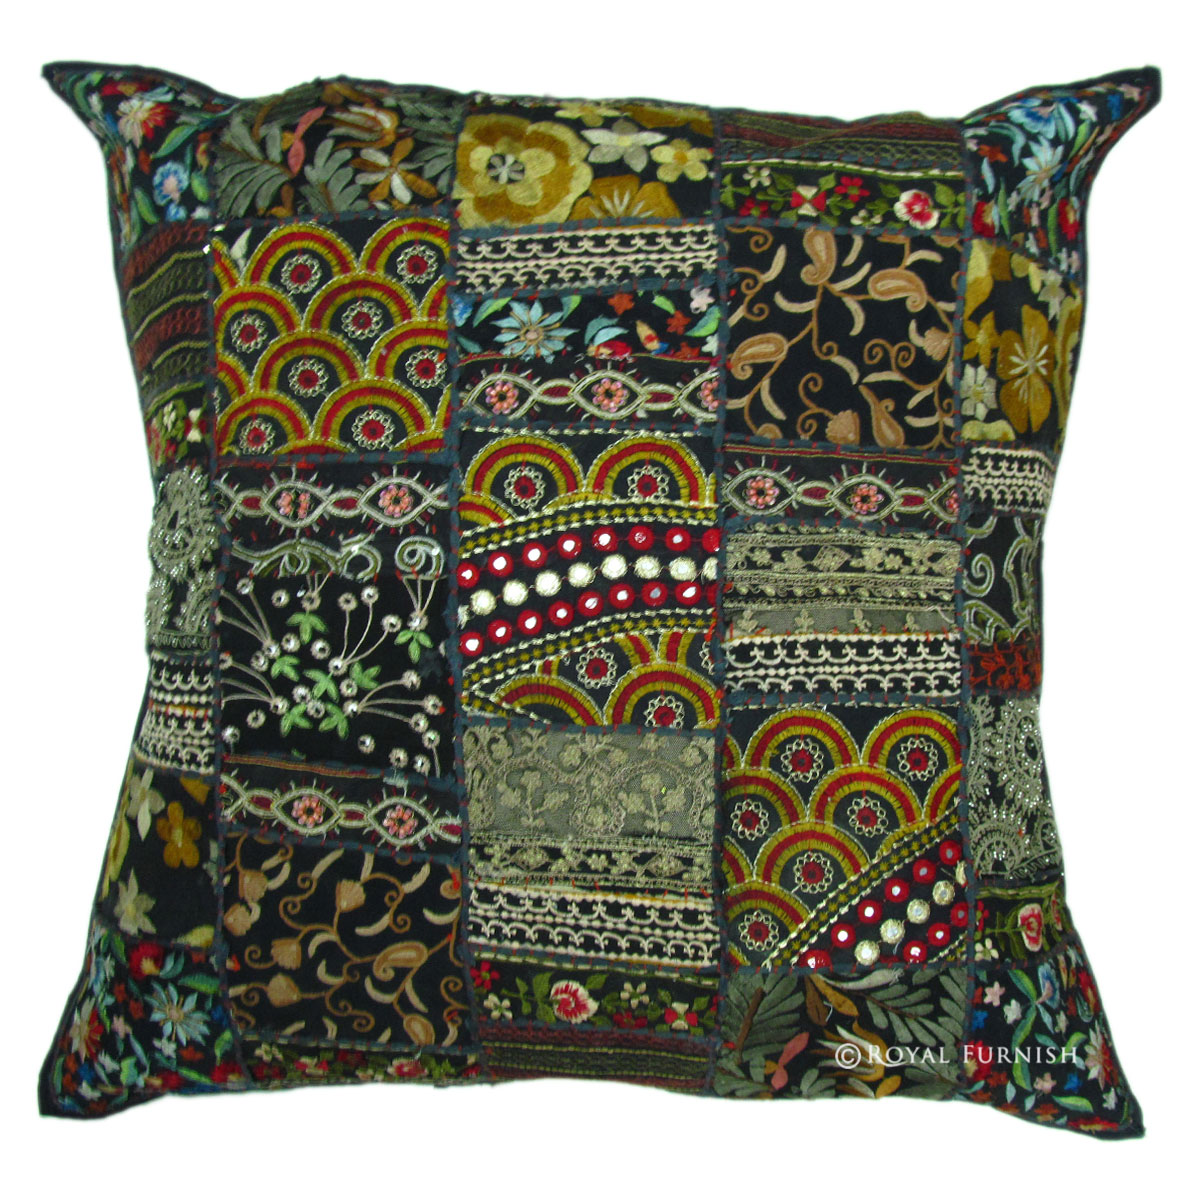 Oversized Black Throw Pillow : 24 Inch Large Black Multi Sari Patchwork Throw Pillow - RoyalFurnish.com